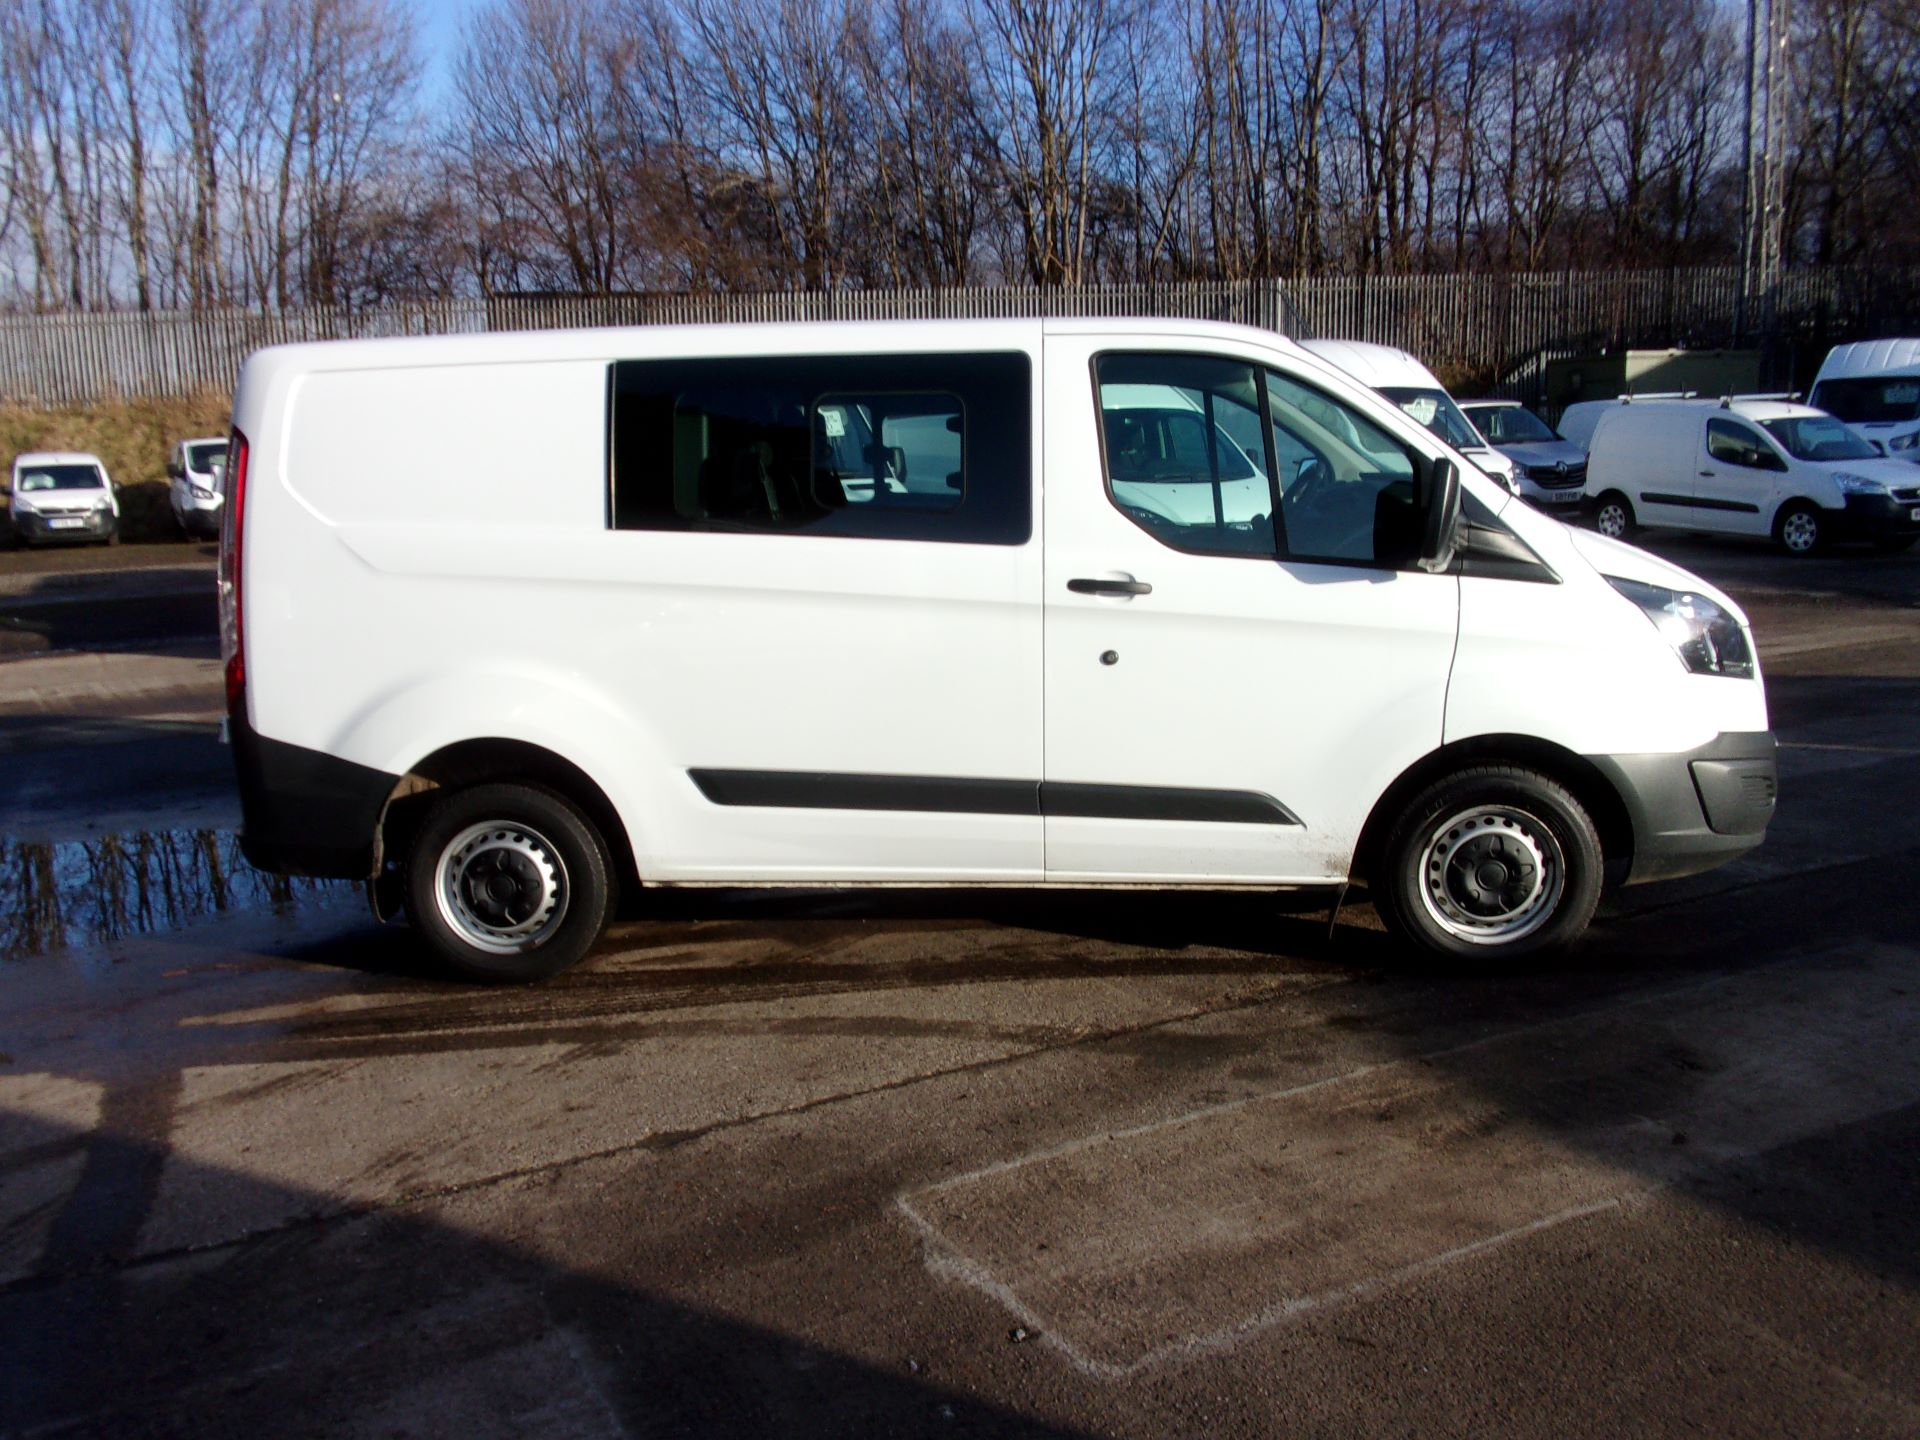 2017 Ford Transit Custom 290 L1 2.0TDCI 105PS LOW ROOF DOUBLE CAB EURO 6 (FP17UXF) Image 8